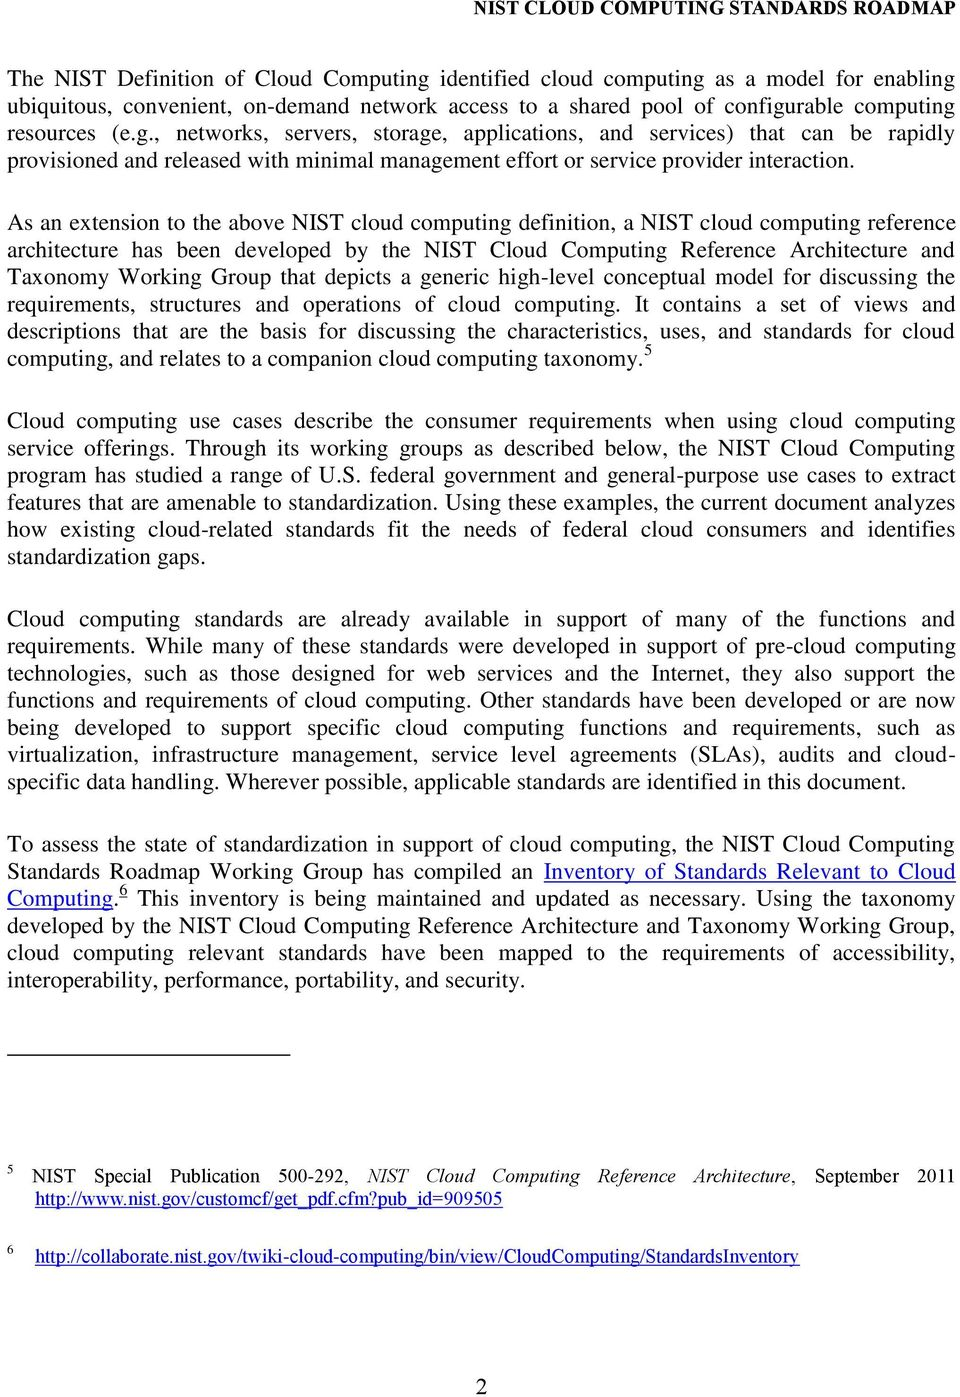 As an extension to the above NIST cloud computing definition, a NIST cloud computing reference architecture has been developed by the NIST Cloud Computing Reference Architecture and Taxonomy Working